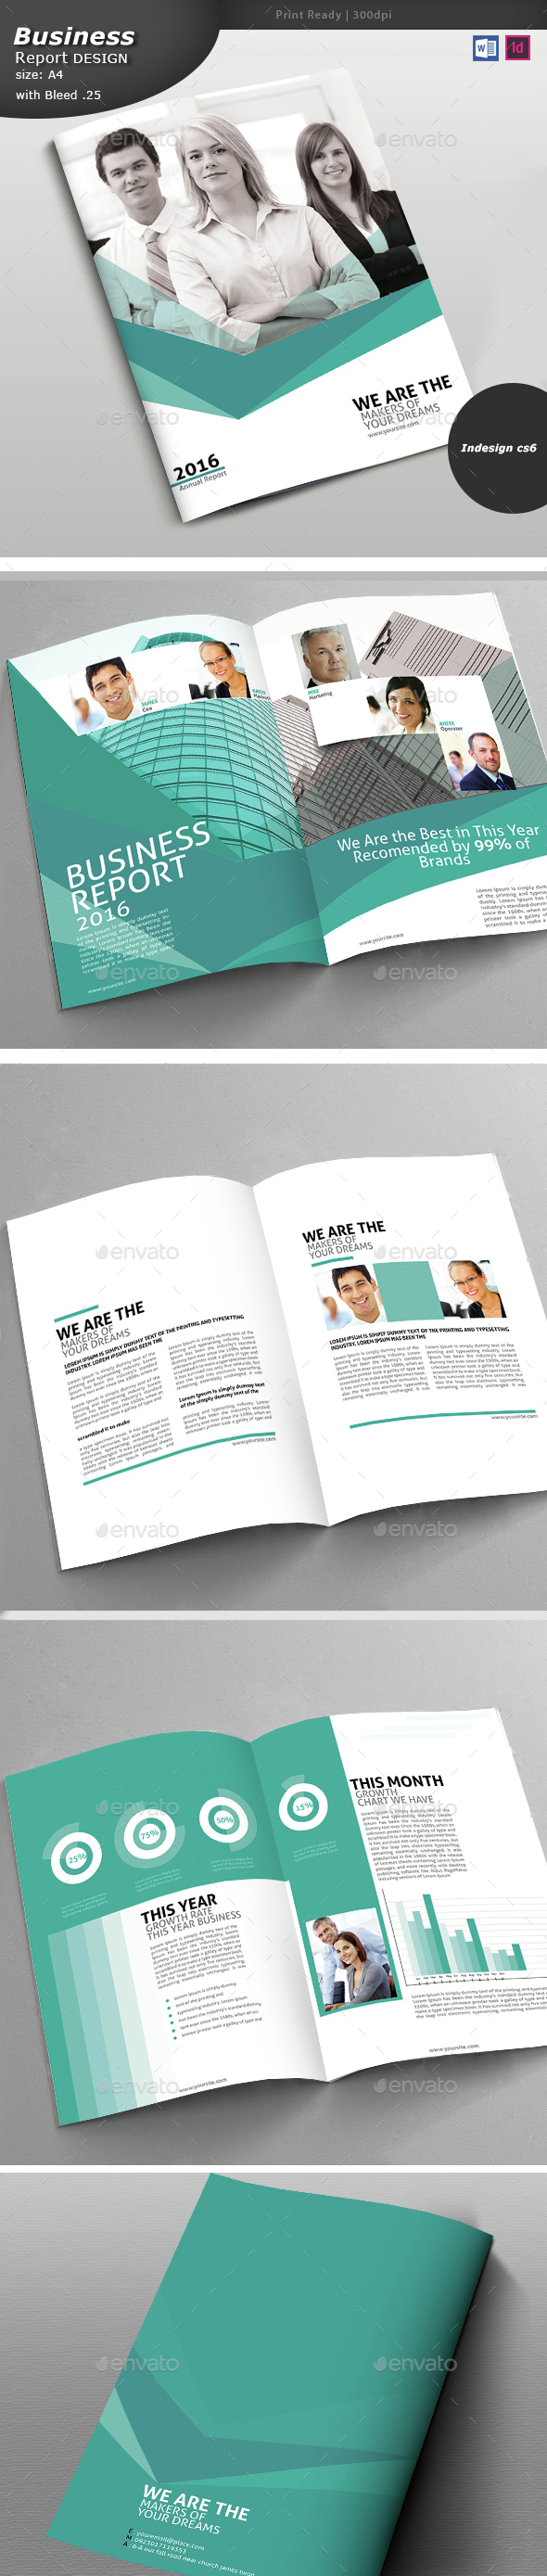 Annual Report Design Graphics Designs Templates - Brochure design templates indesign